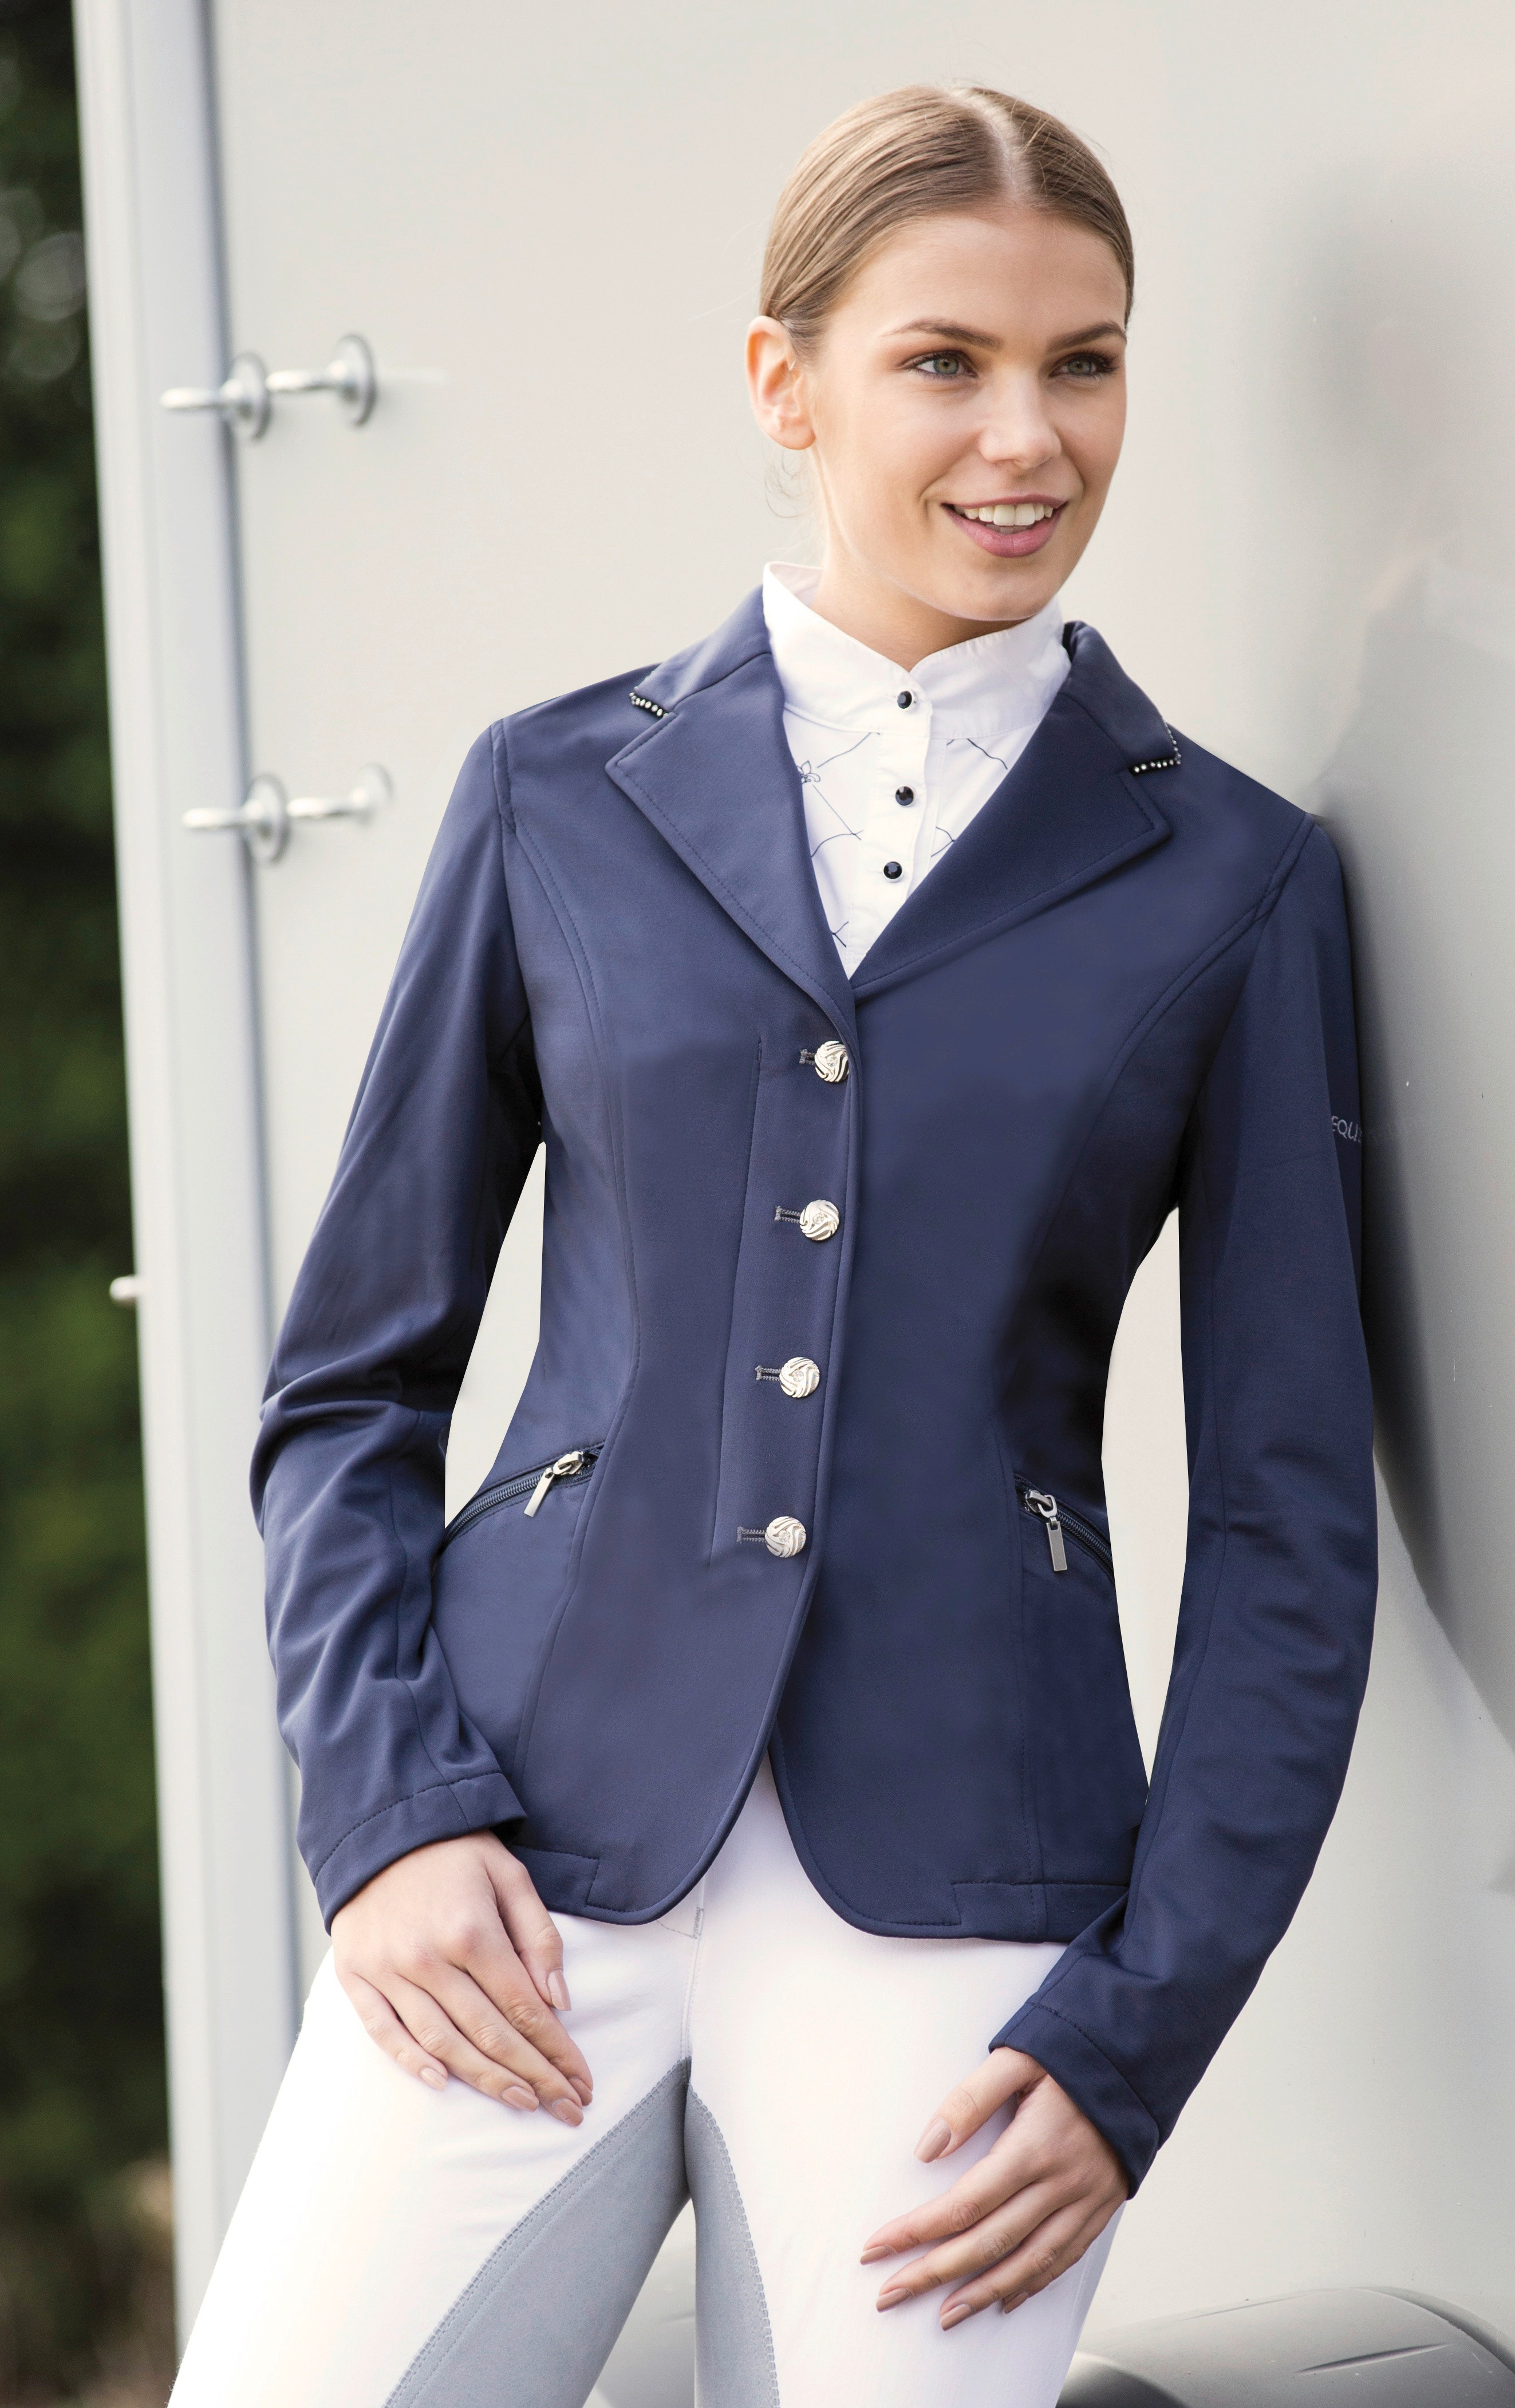 Equetech Ellipse competition jacket sweepstakes